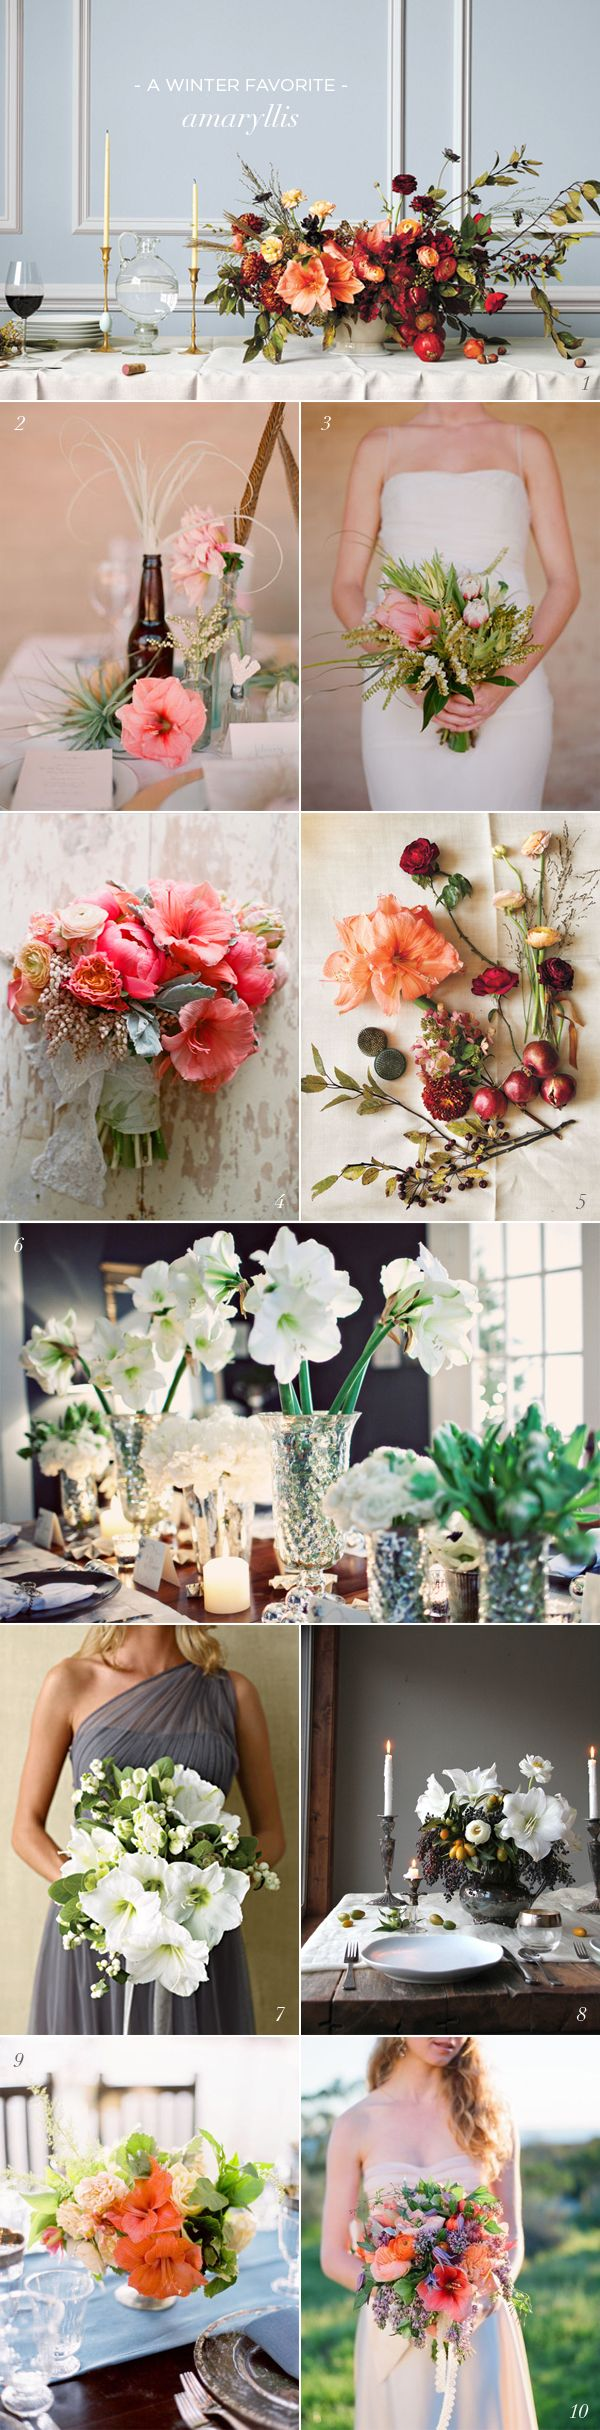 Amaryllis Wedding Flower inspiration board